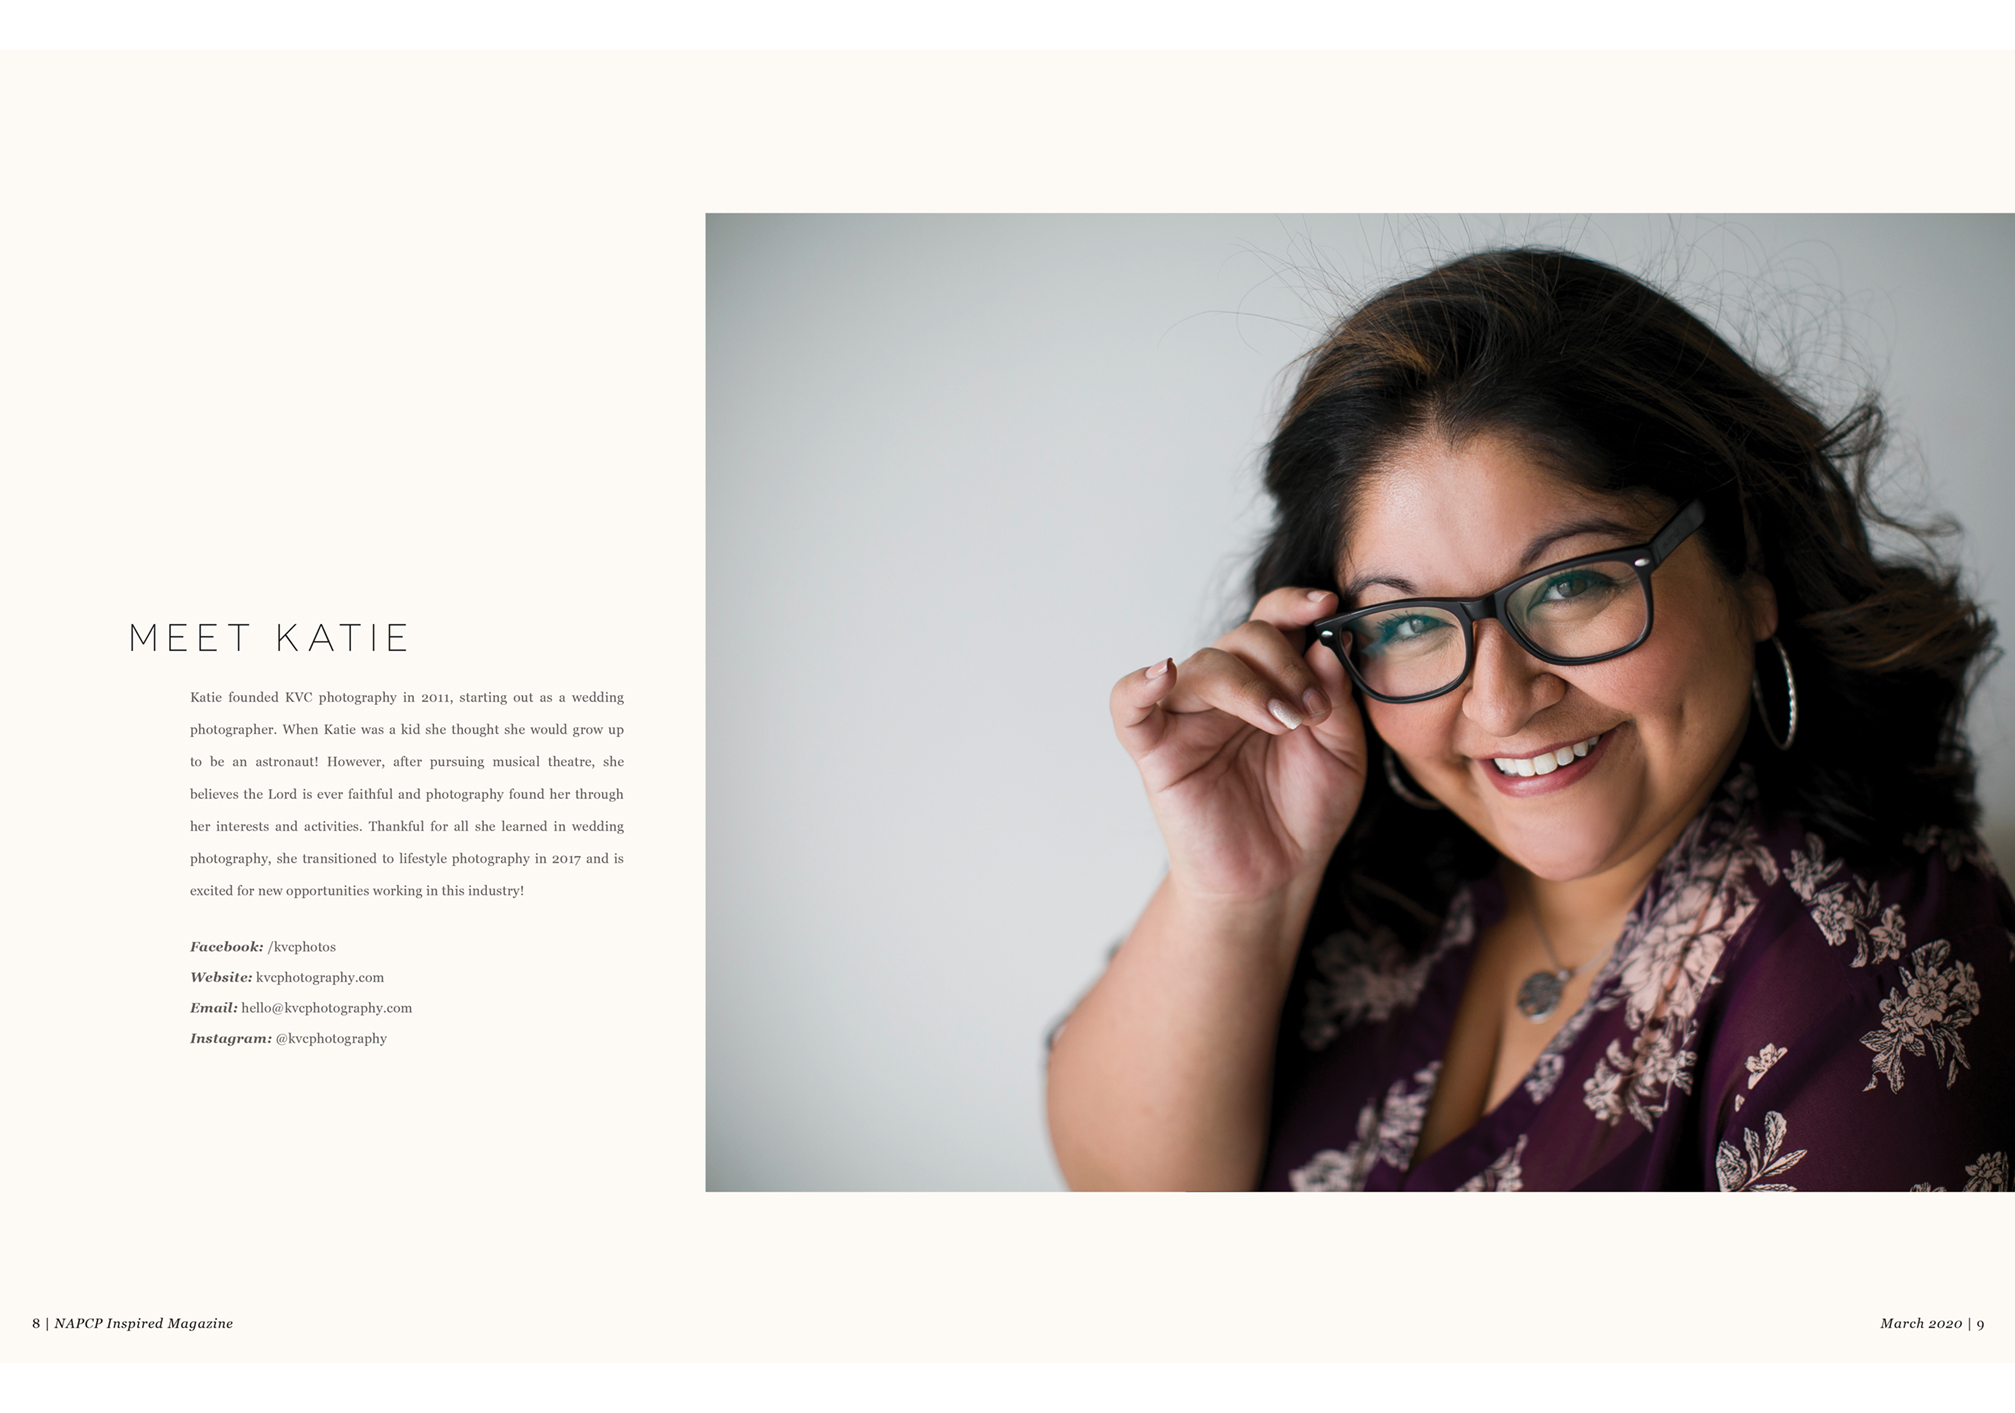 Katie Cathell, March 2020 Inspired Magazine